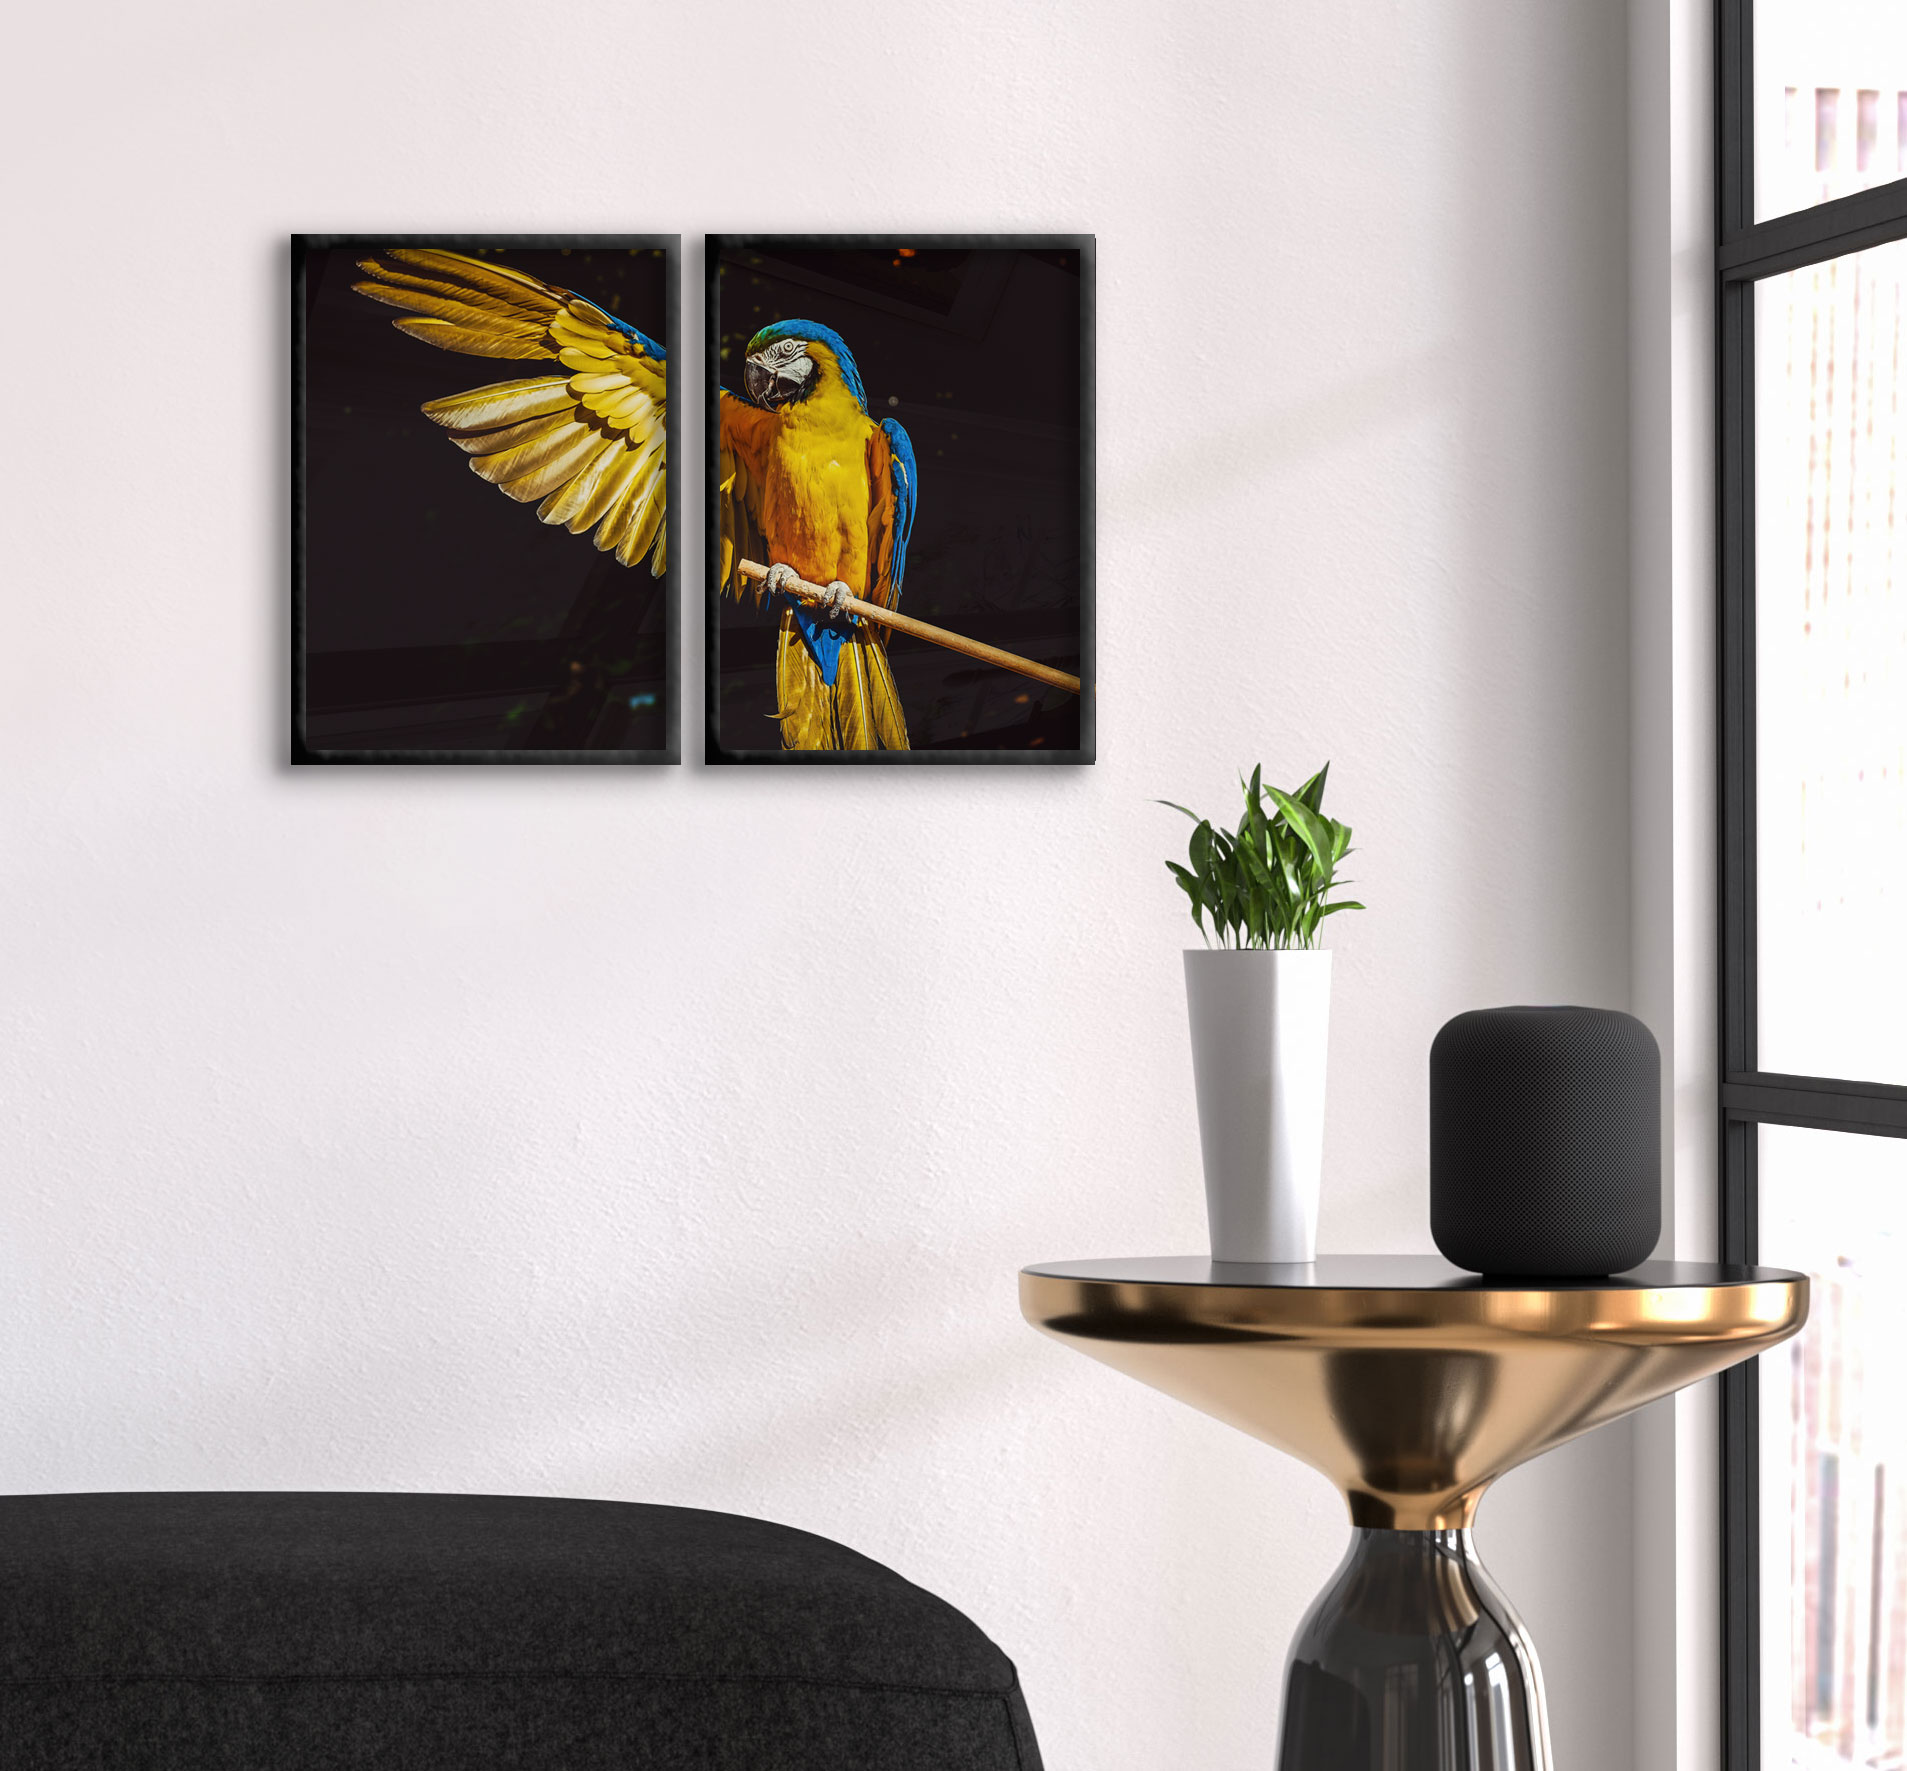 cool parrot poster in two pieces swedearts 21259 | 161149443 origpic f21259